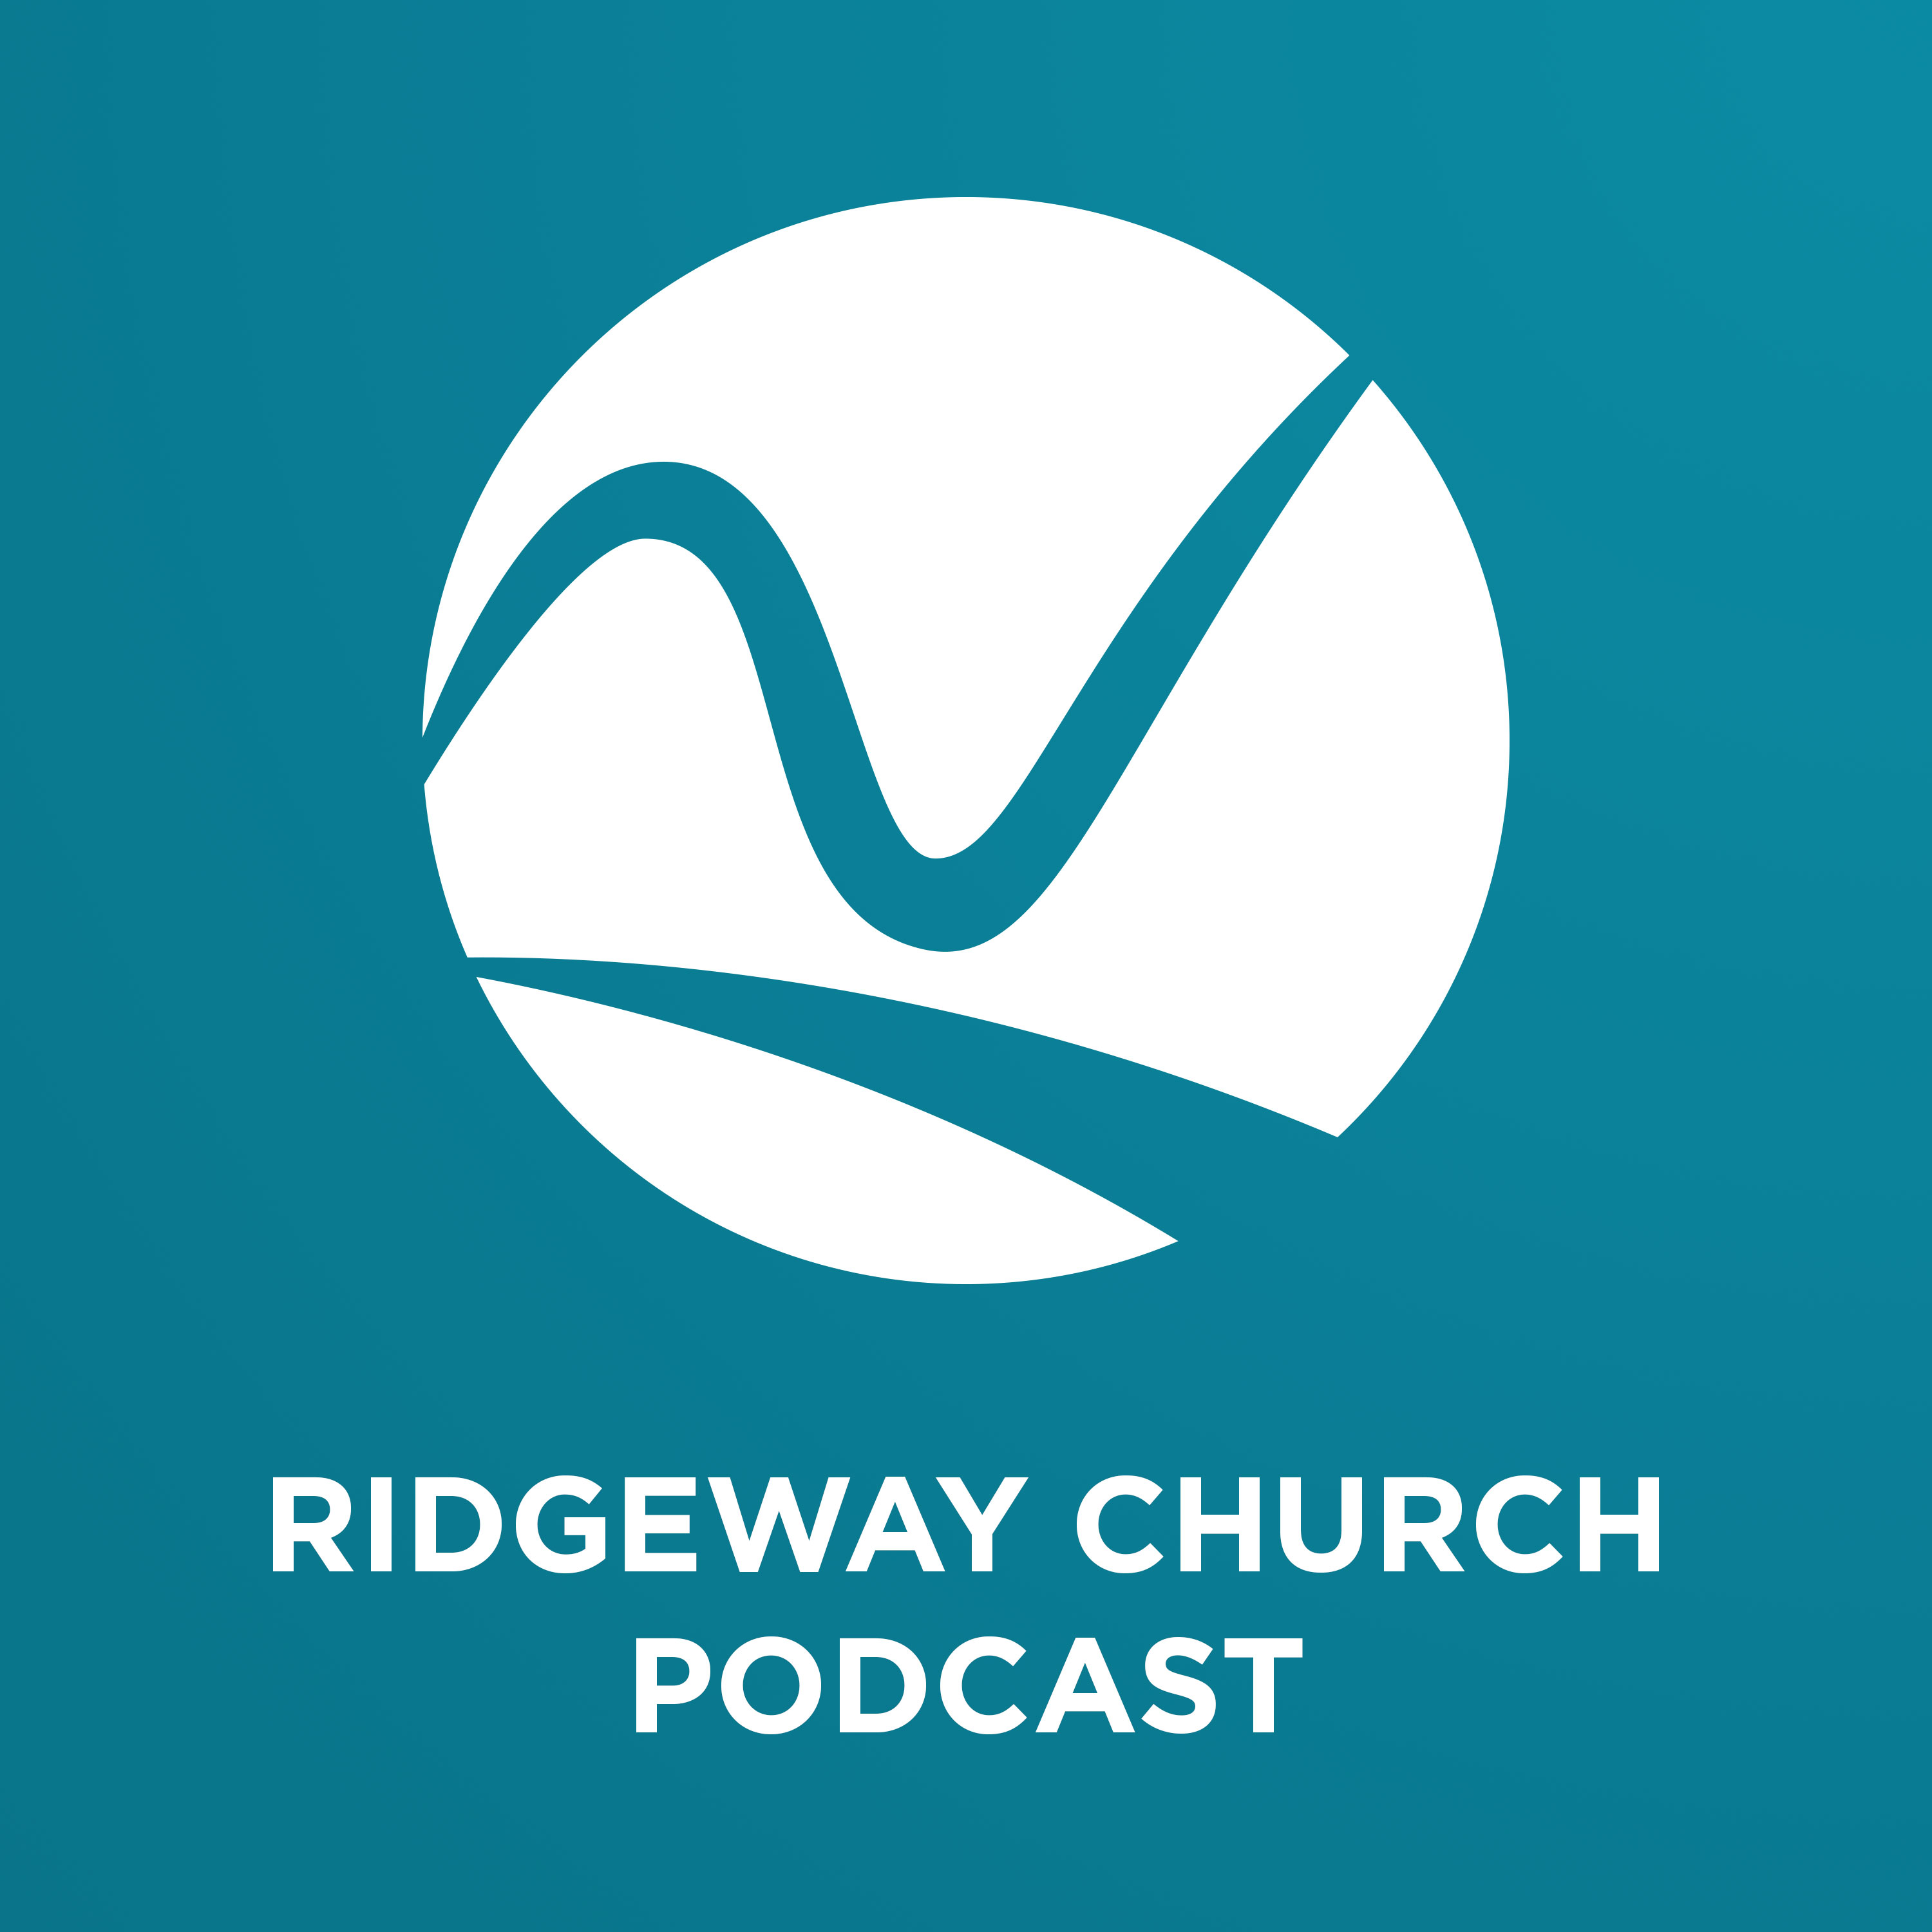 Ridgeway Church Podcast